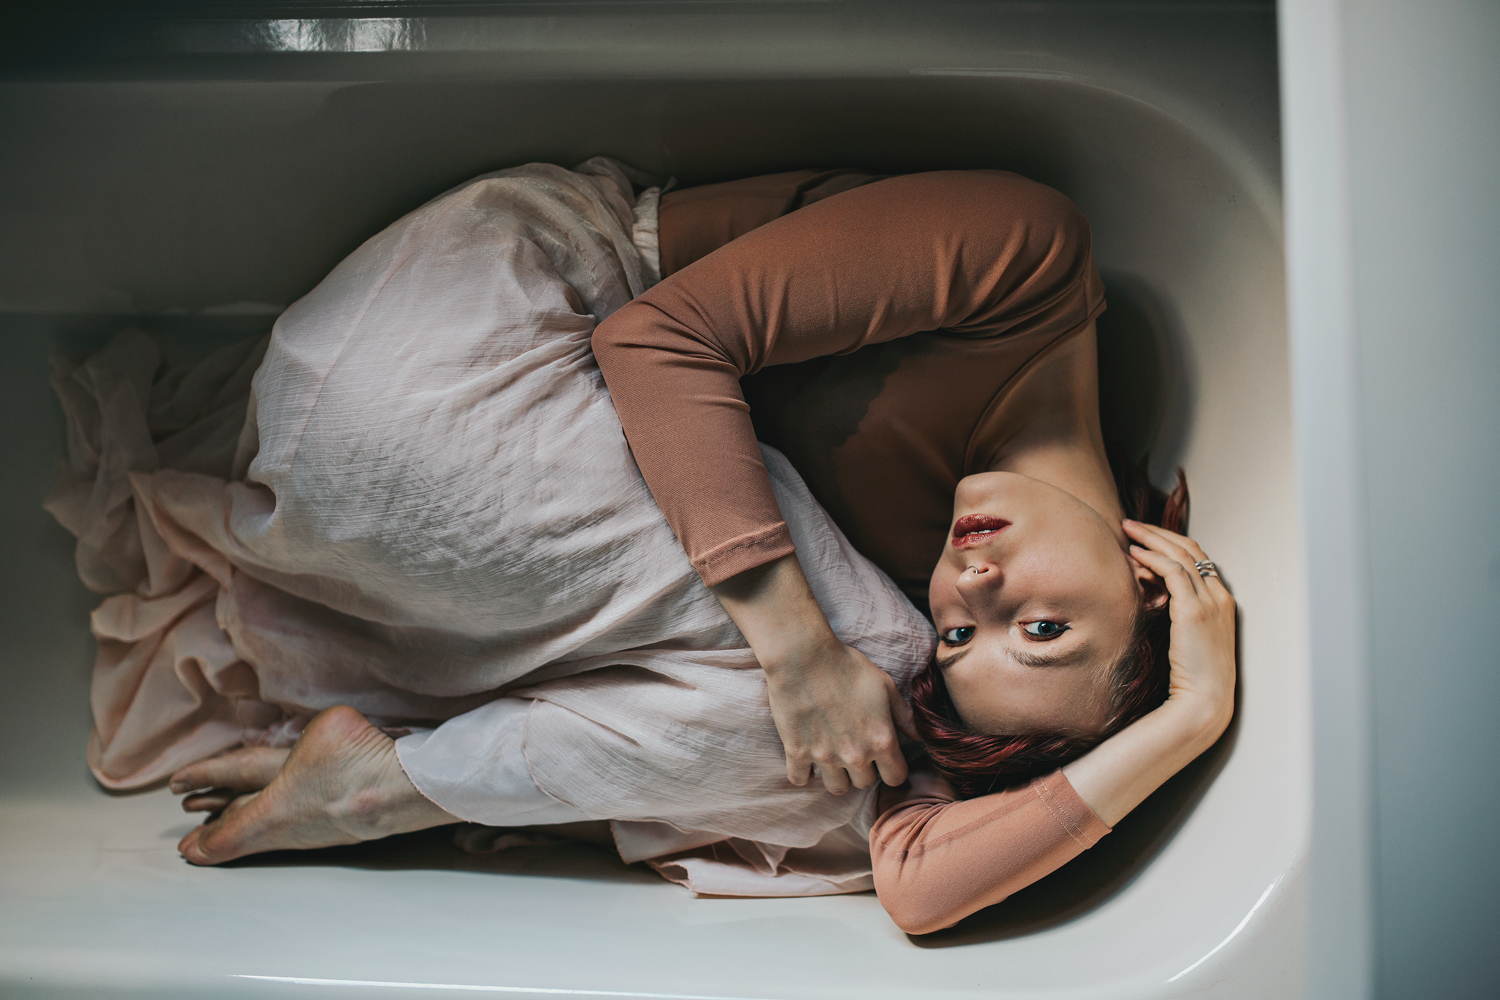 Artistic photo of model huddled in a bath for a fashion photo sh